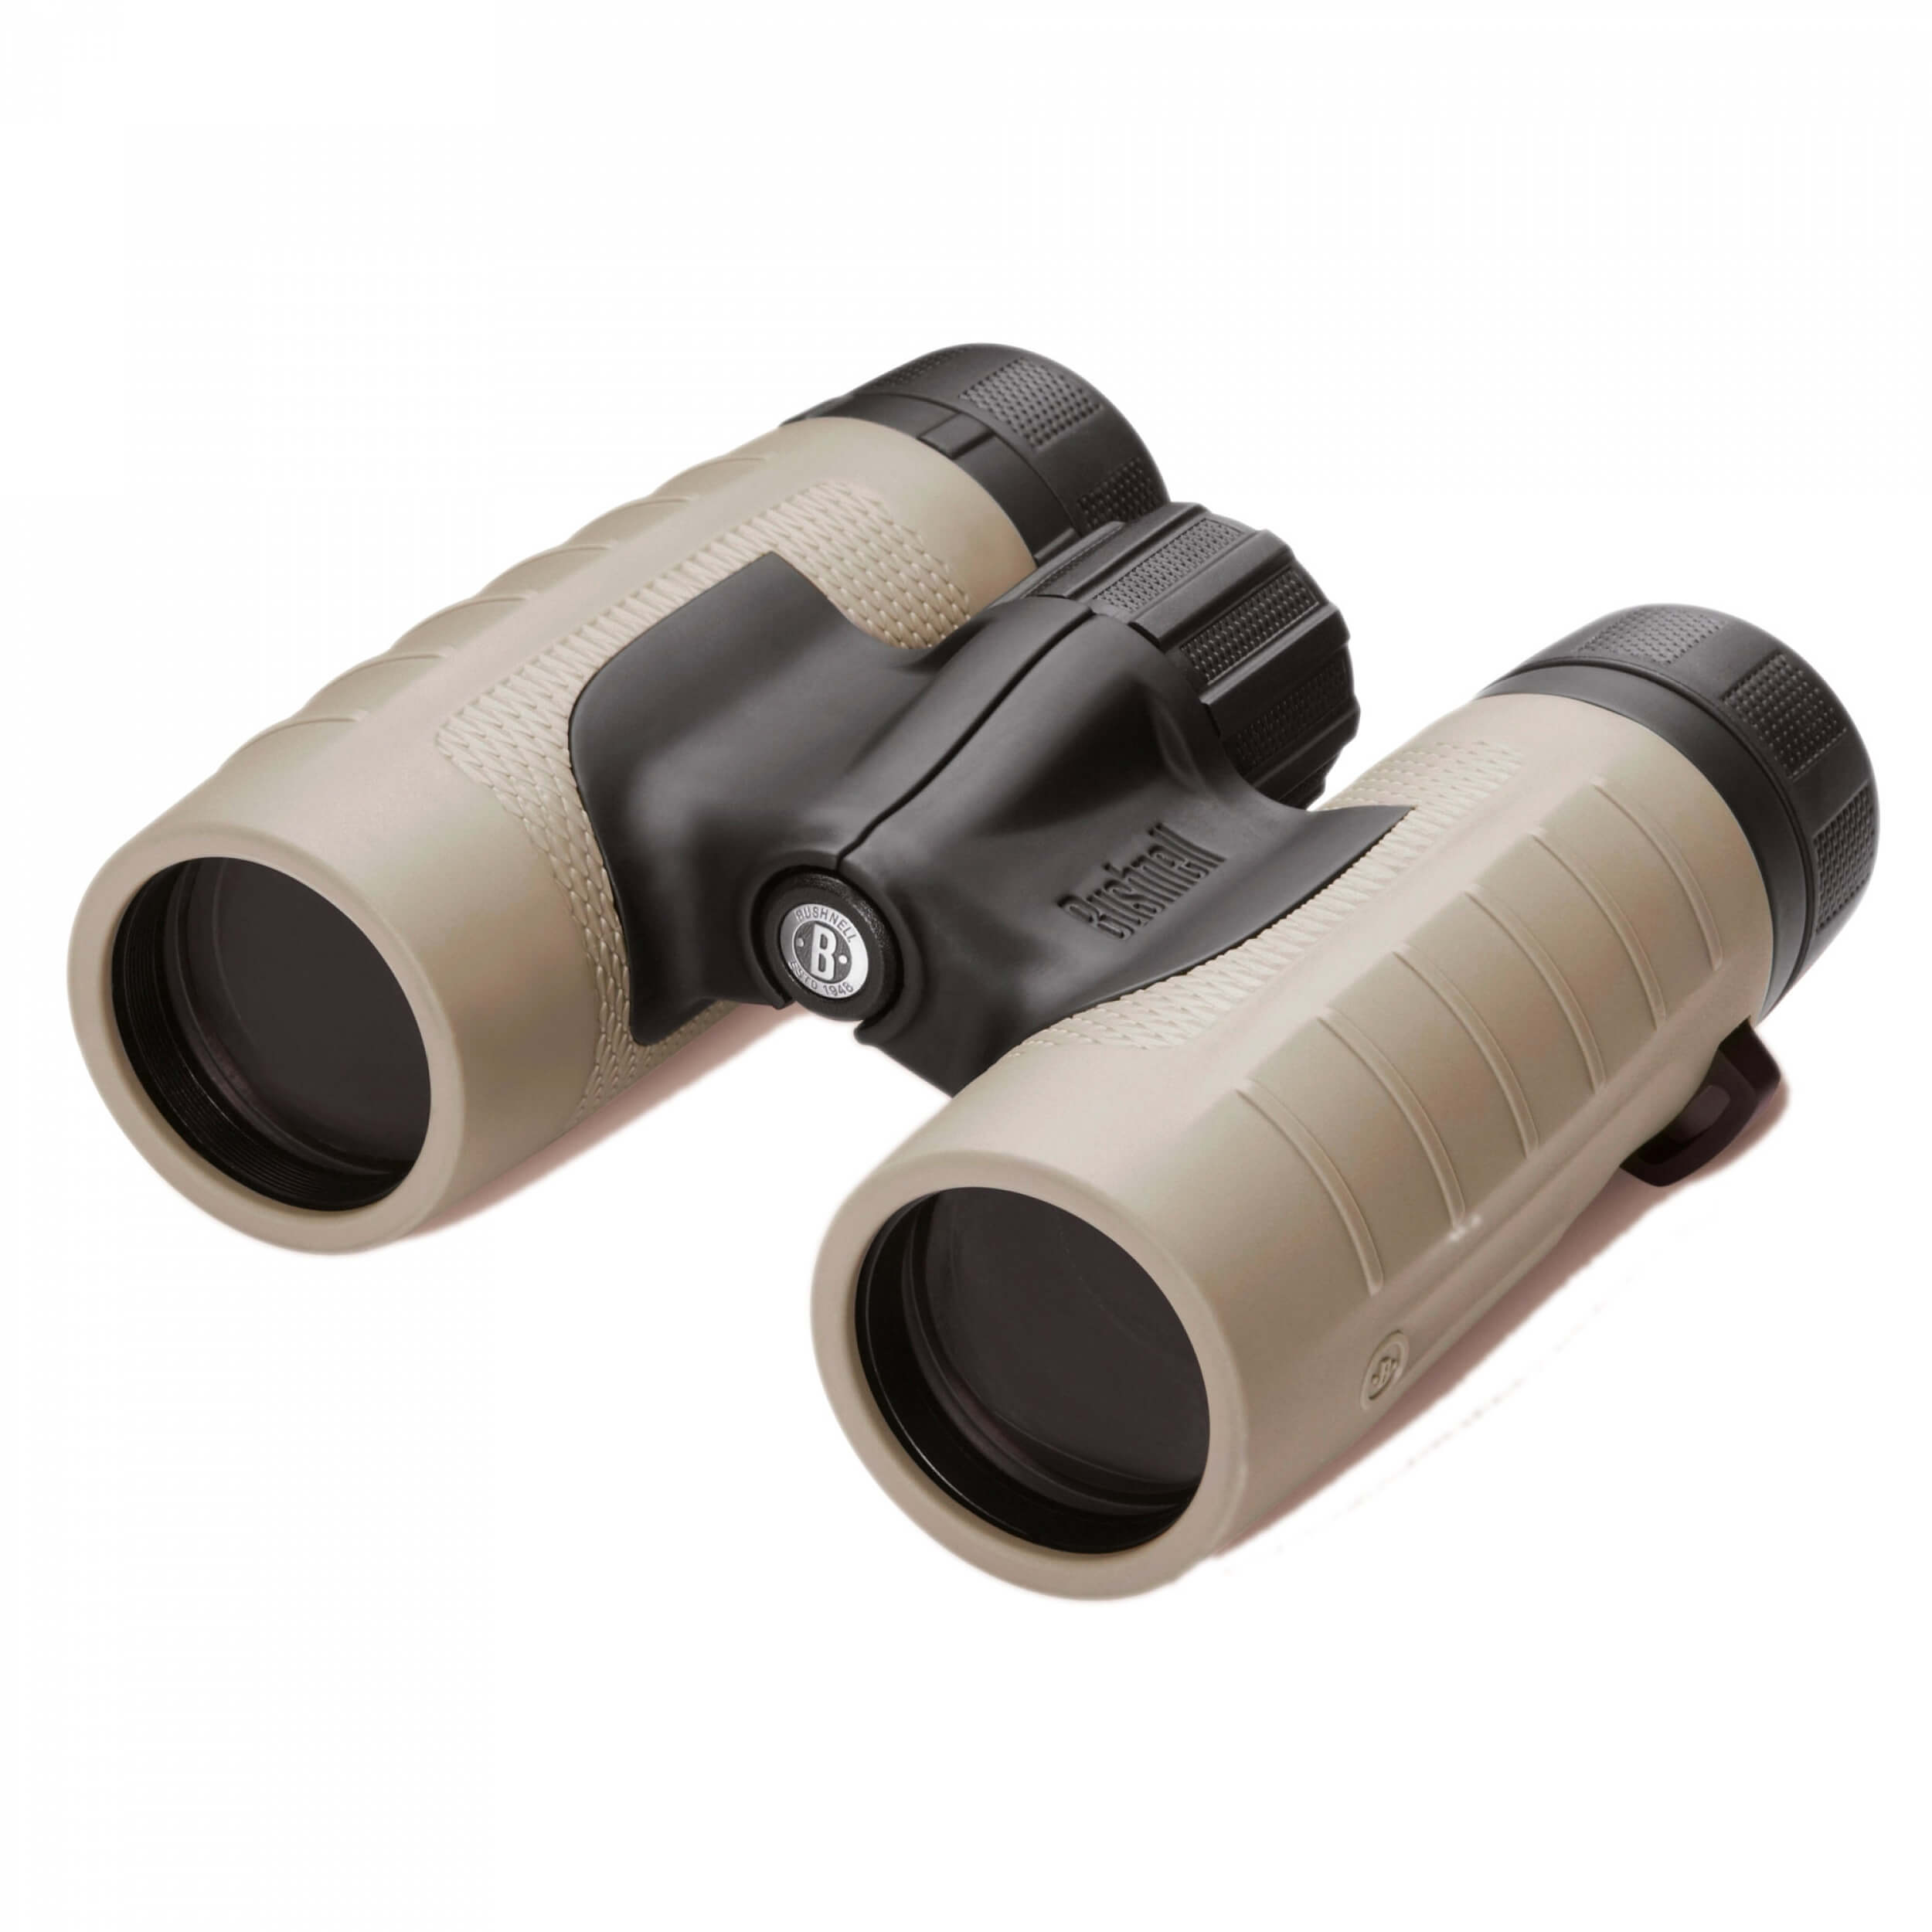 Bushnell Fernglas Naturreview® 8 x 32